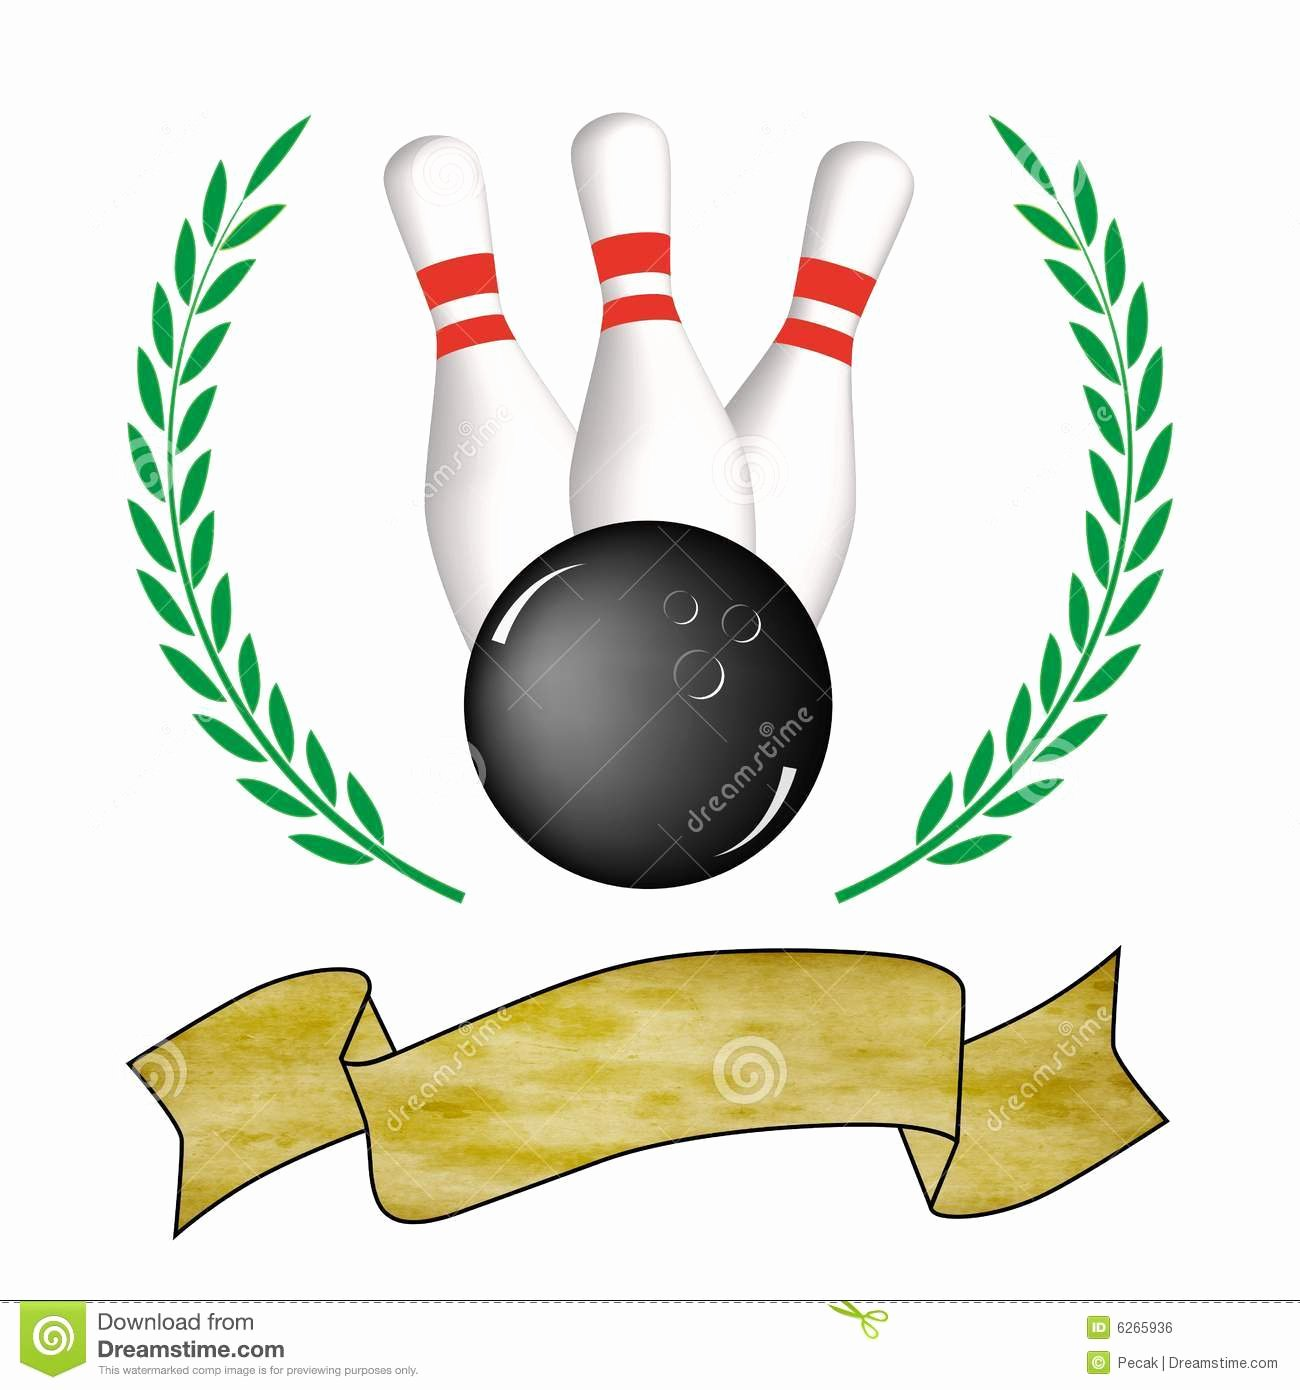 Funny Bowling Award Categories Elegant Bowling Poster Royalty Free Stock Image Image